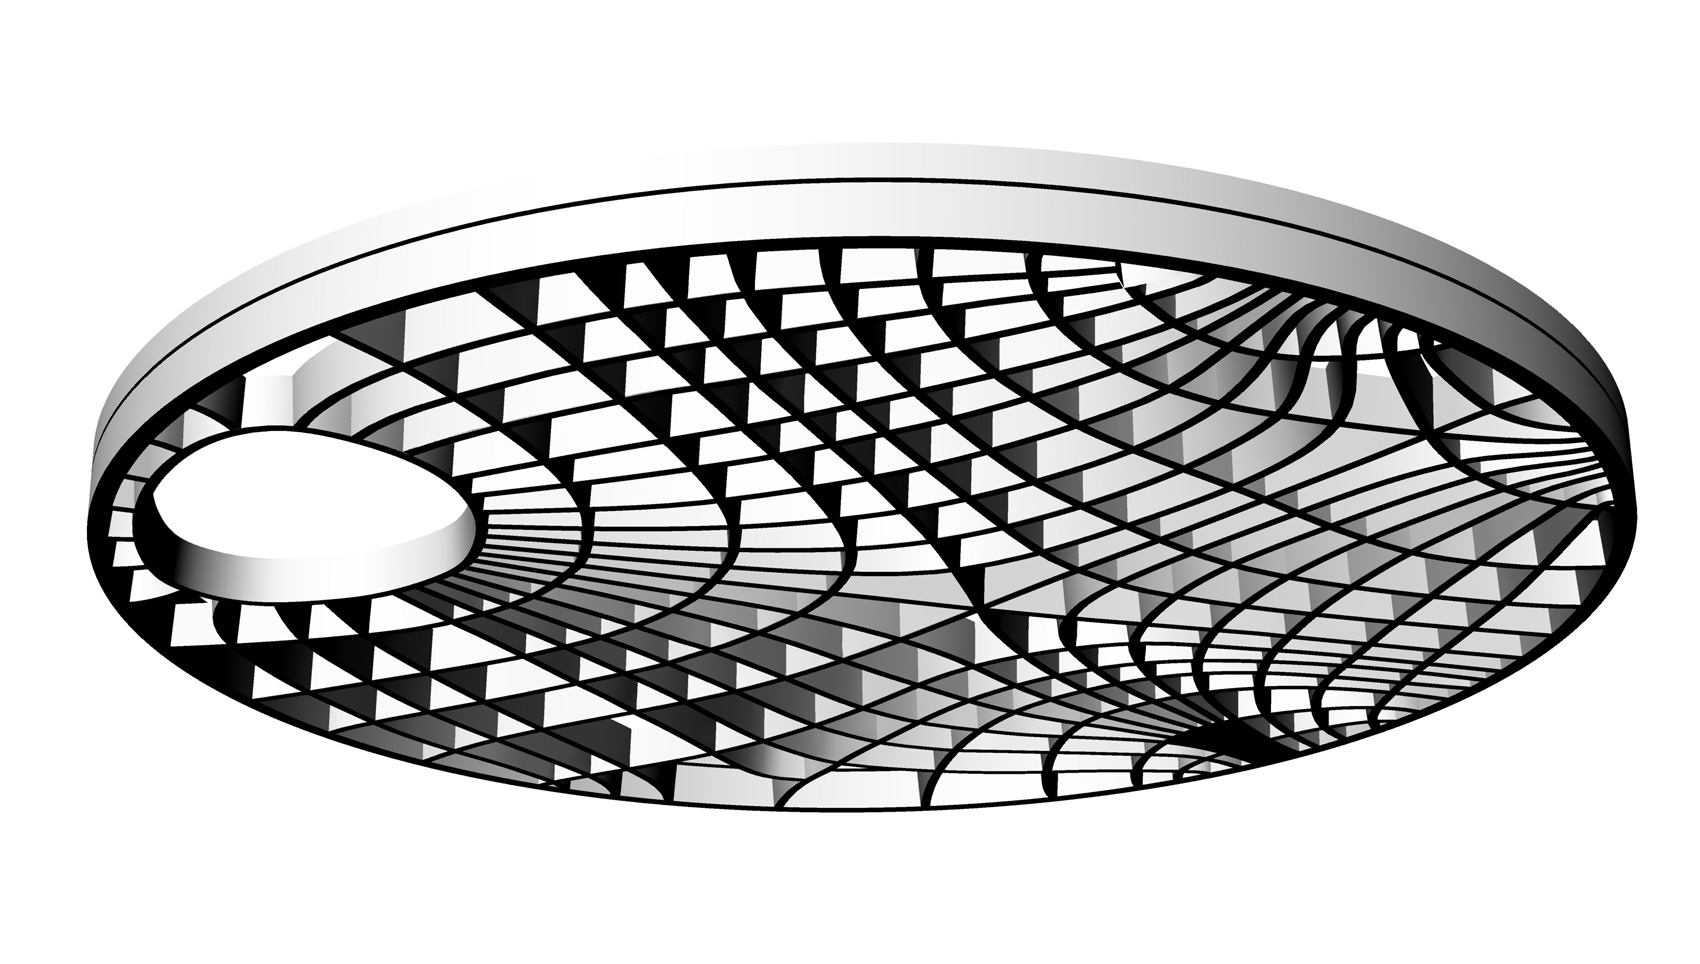 Simulation of the isostatic ribs of the bone-inspired ribbed ceiling of the former zoology lecture hall at the University of Freiburg (Germany). Source: ITKE, Universty of Stuttgart